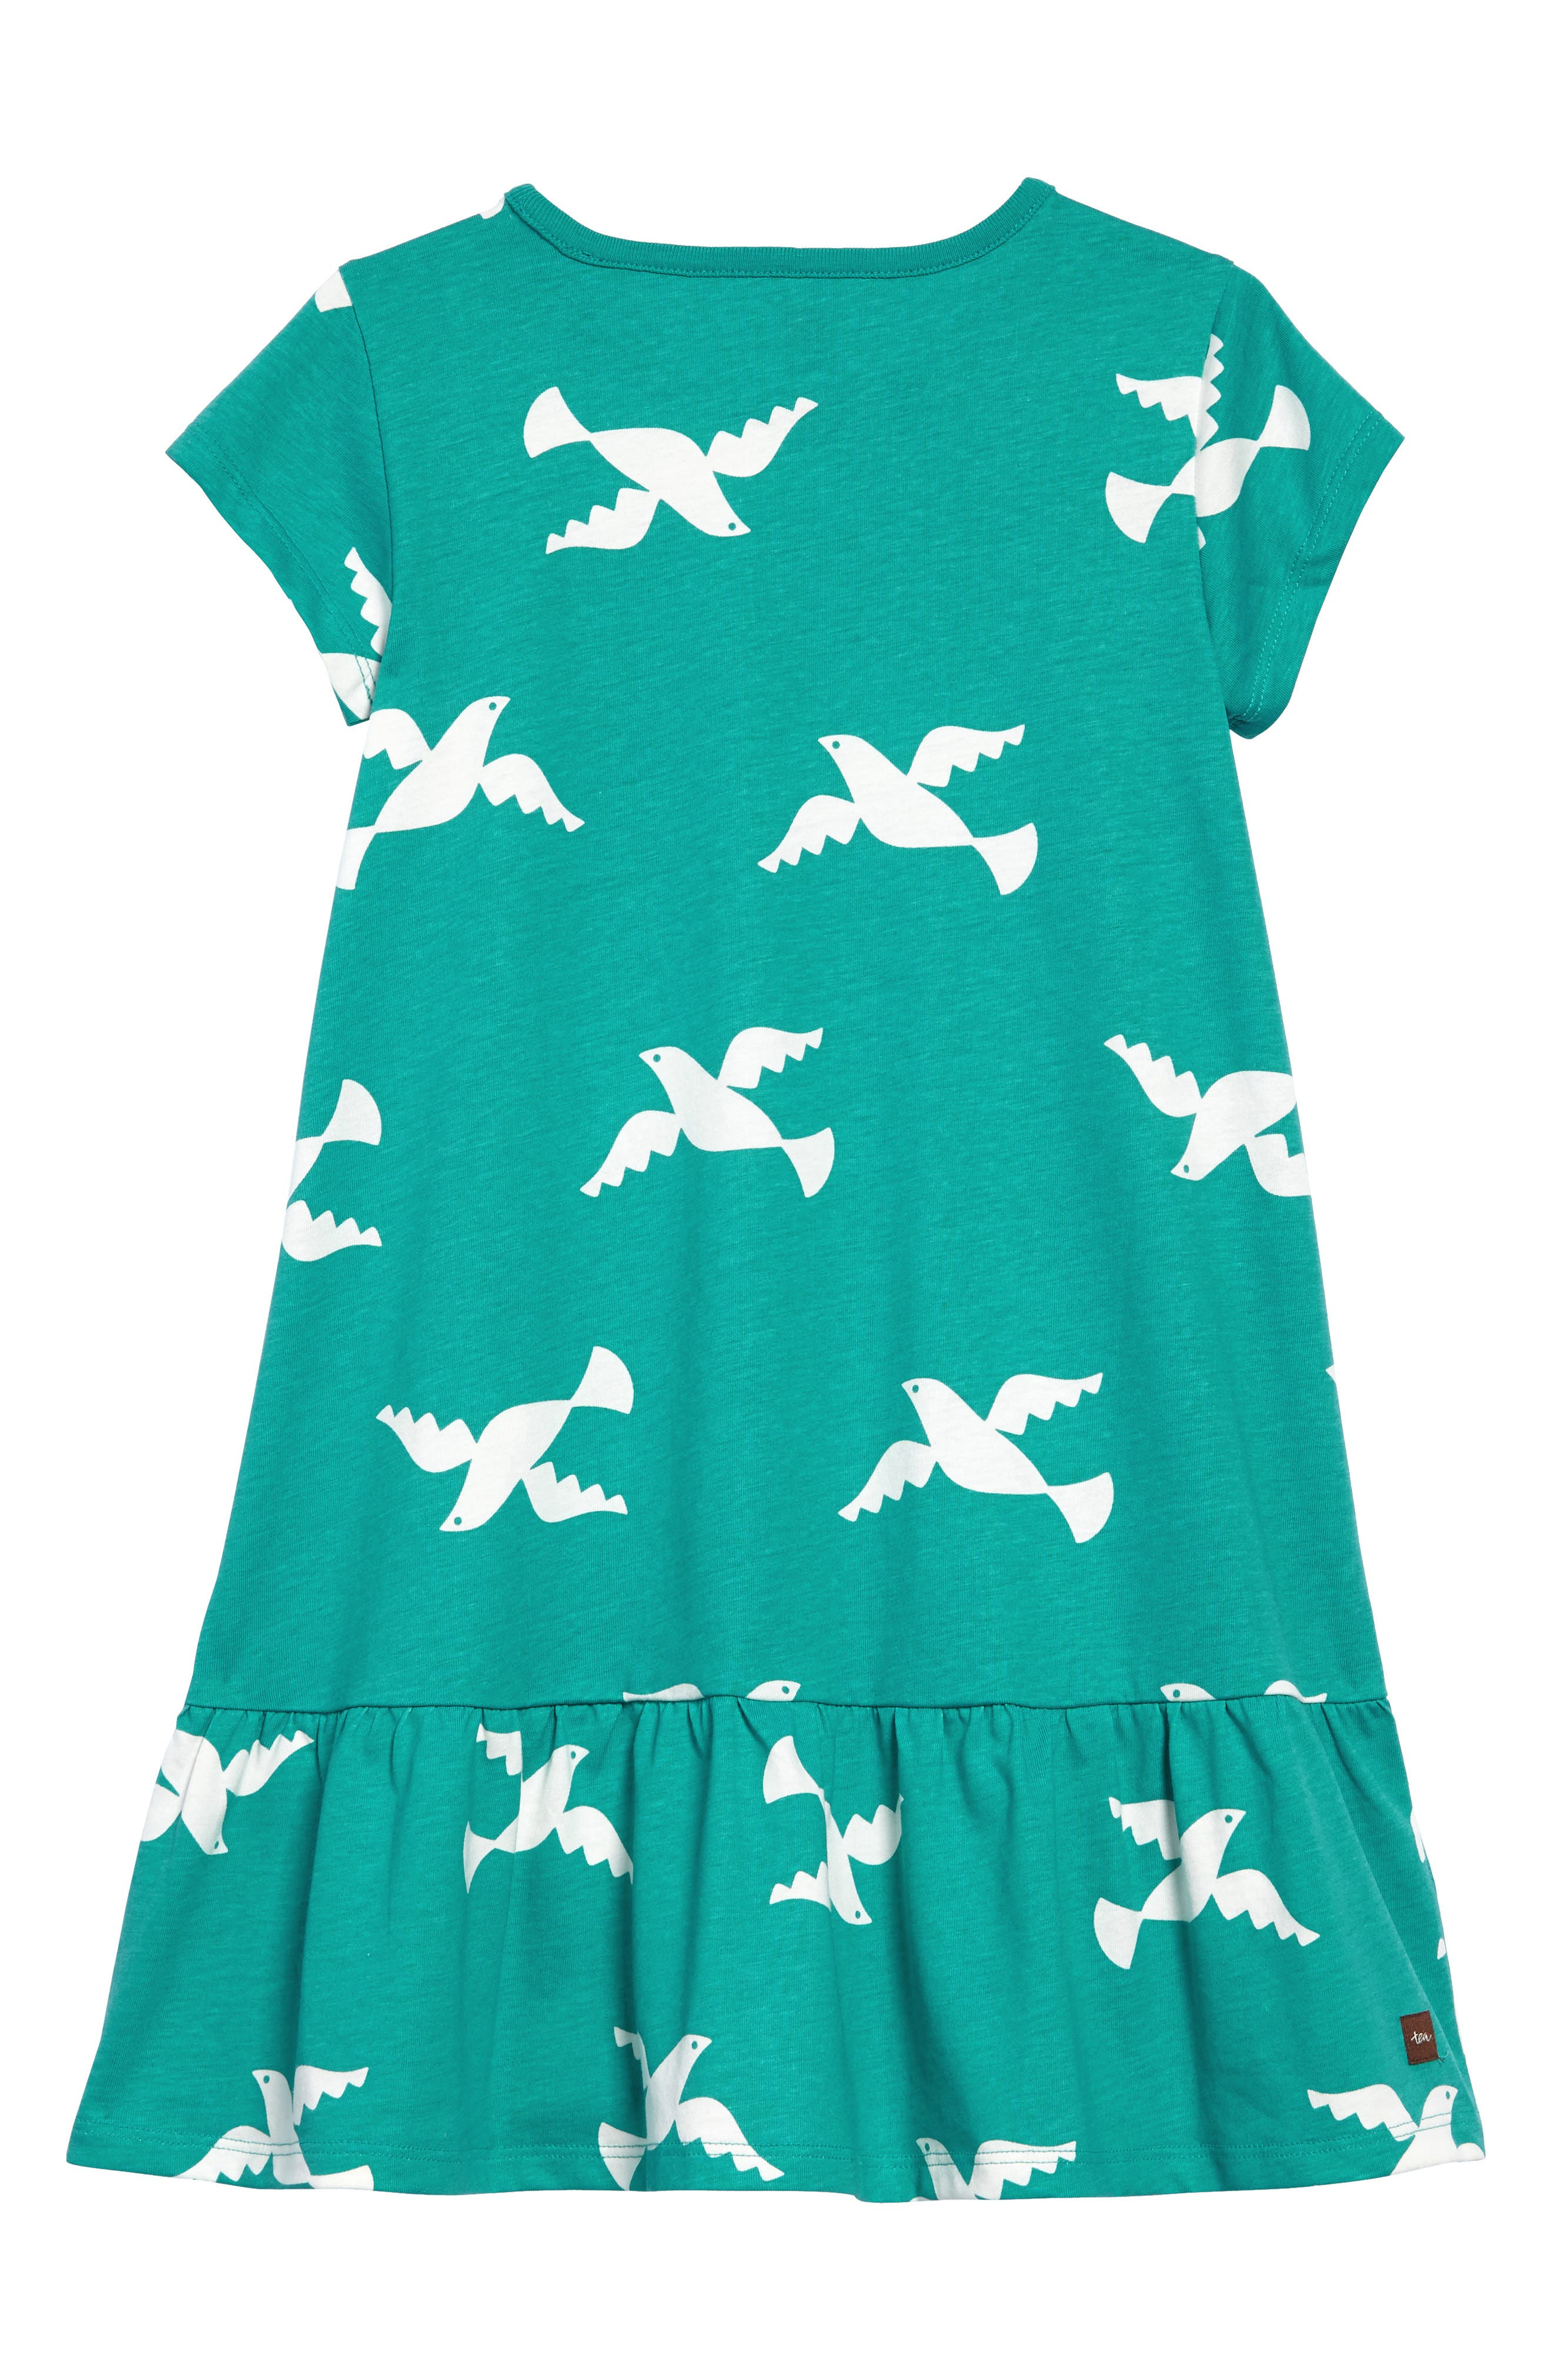 Birds in Flight Ruffle Dress,                             Alternate thumbnail 2, color,                             Doves